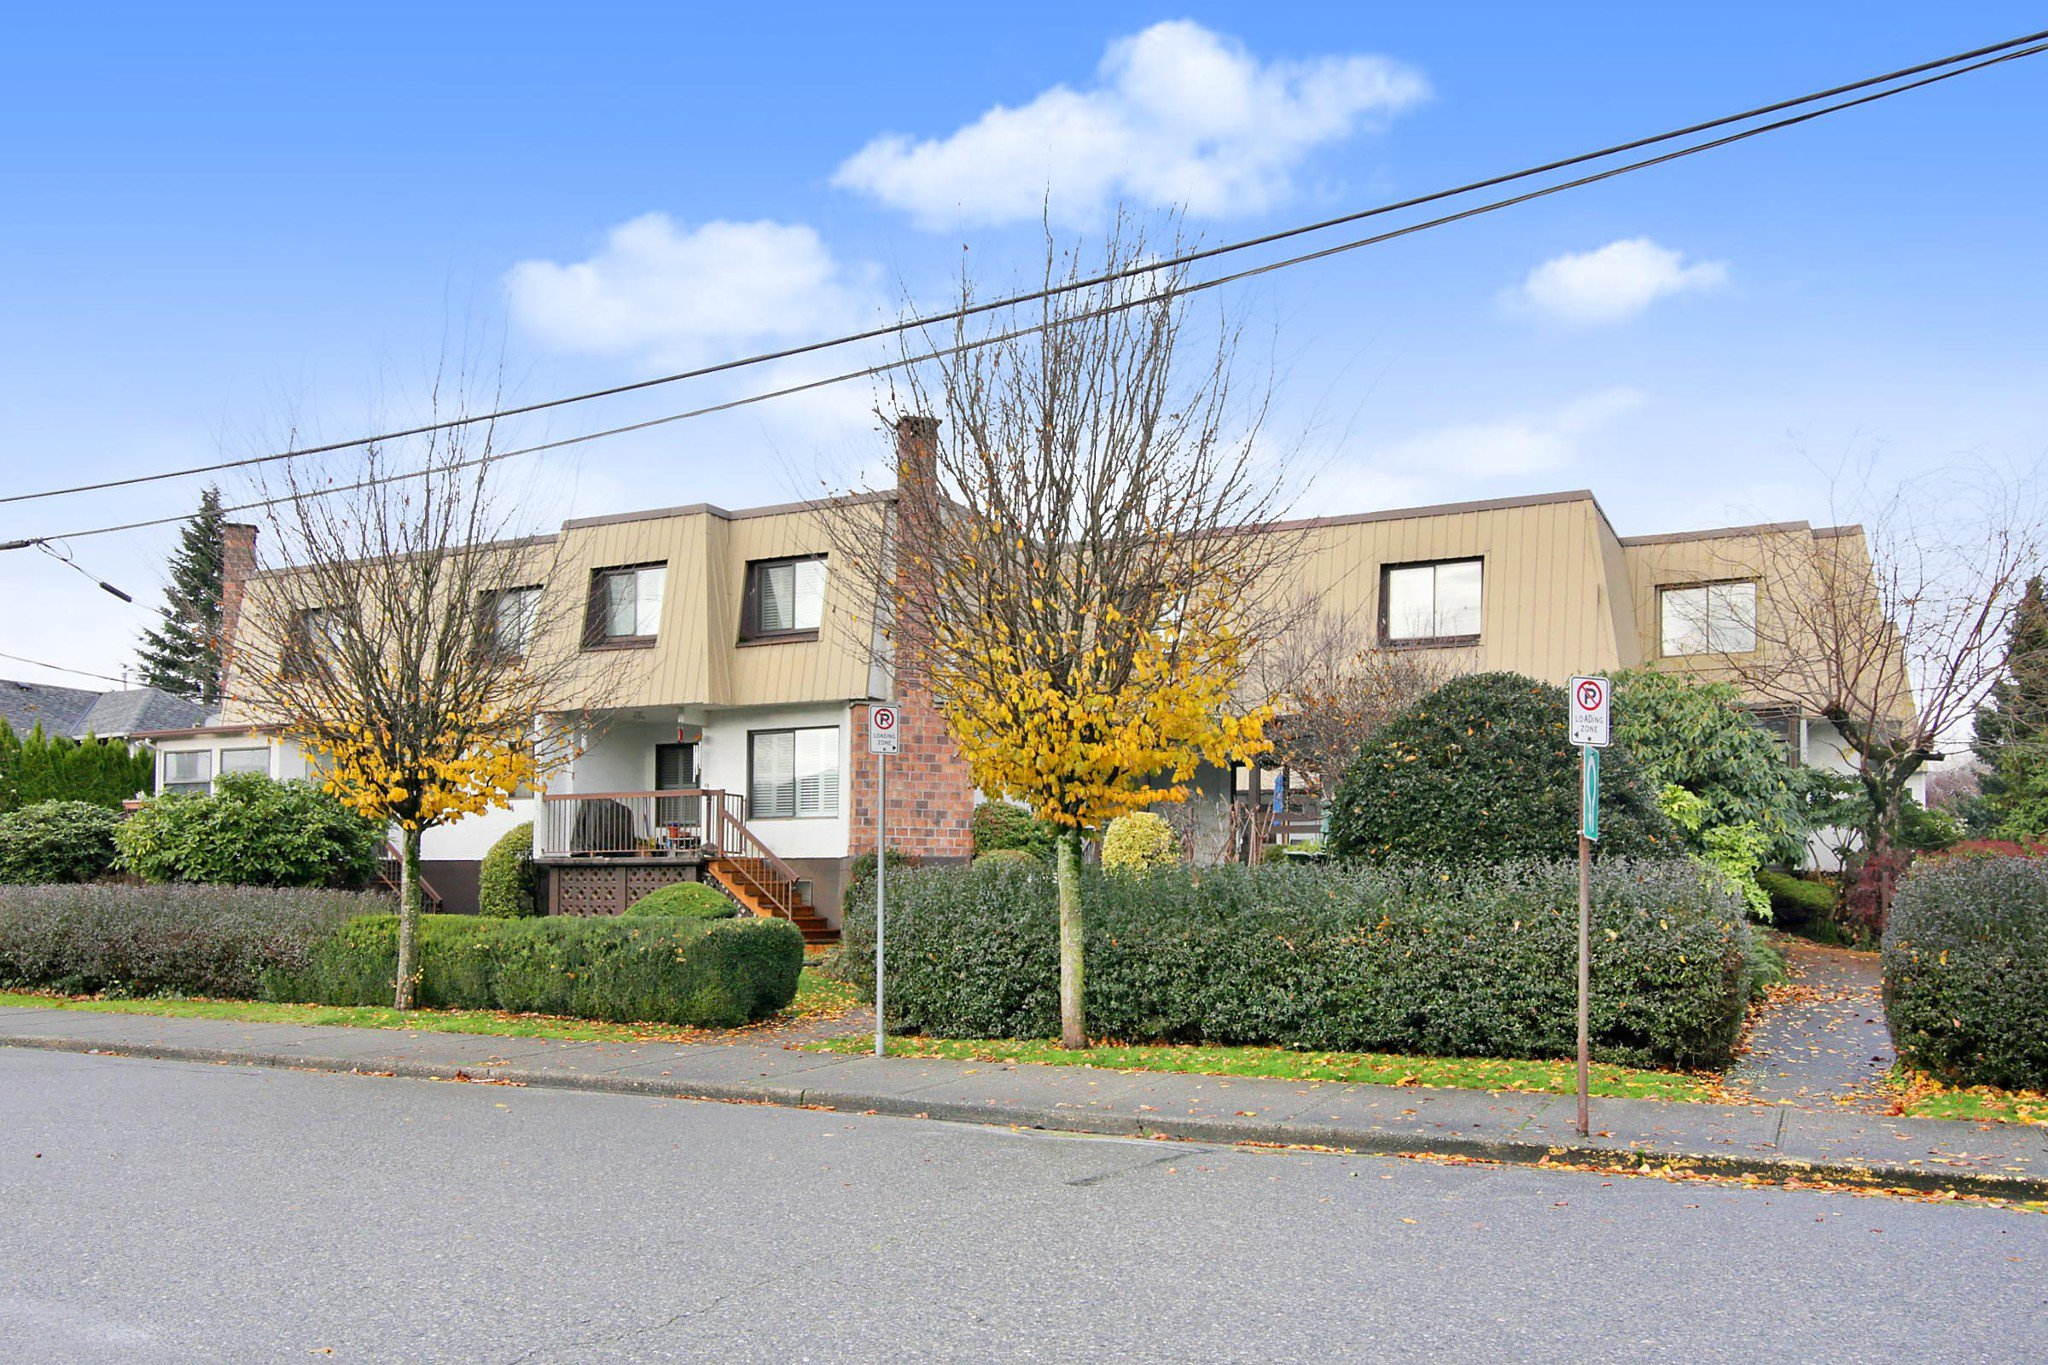 """Main Photo: 10 46085 GORE Avenue in Chilliwack: Chilliwack E Young-Yale Townhouse for sale in """"Sherwood Gardens"""" : MLS®# R2520508"""